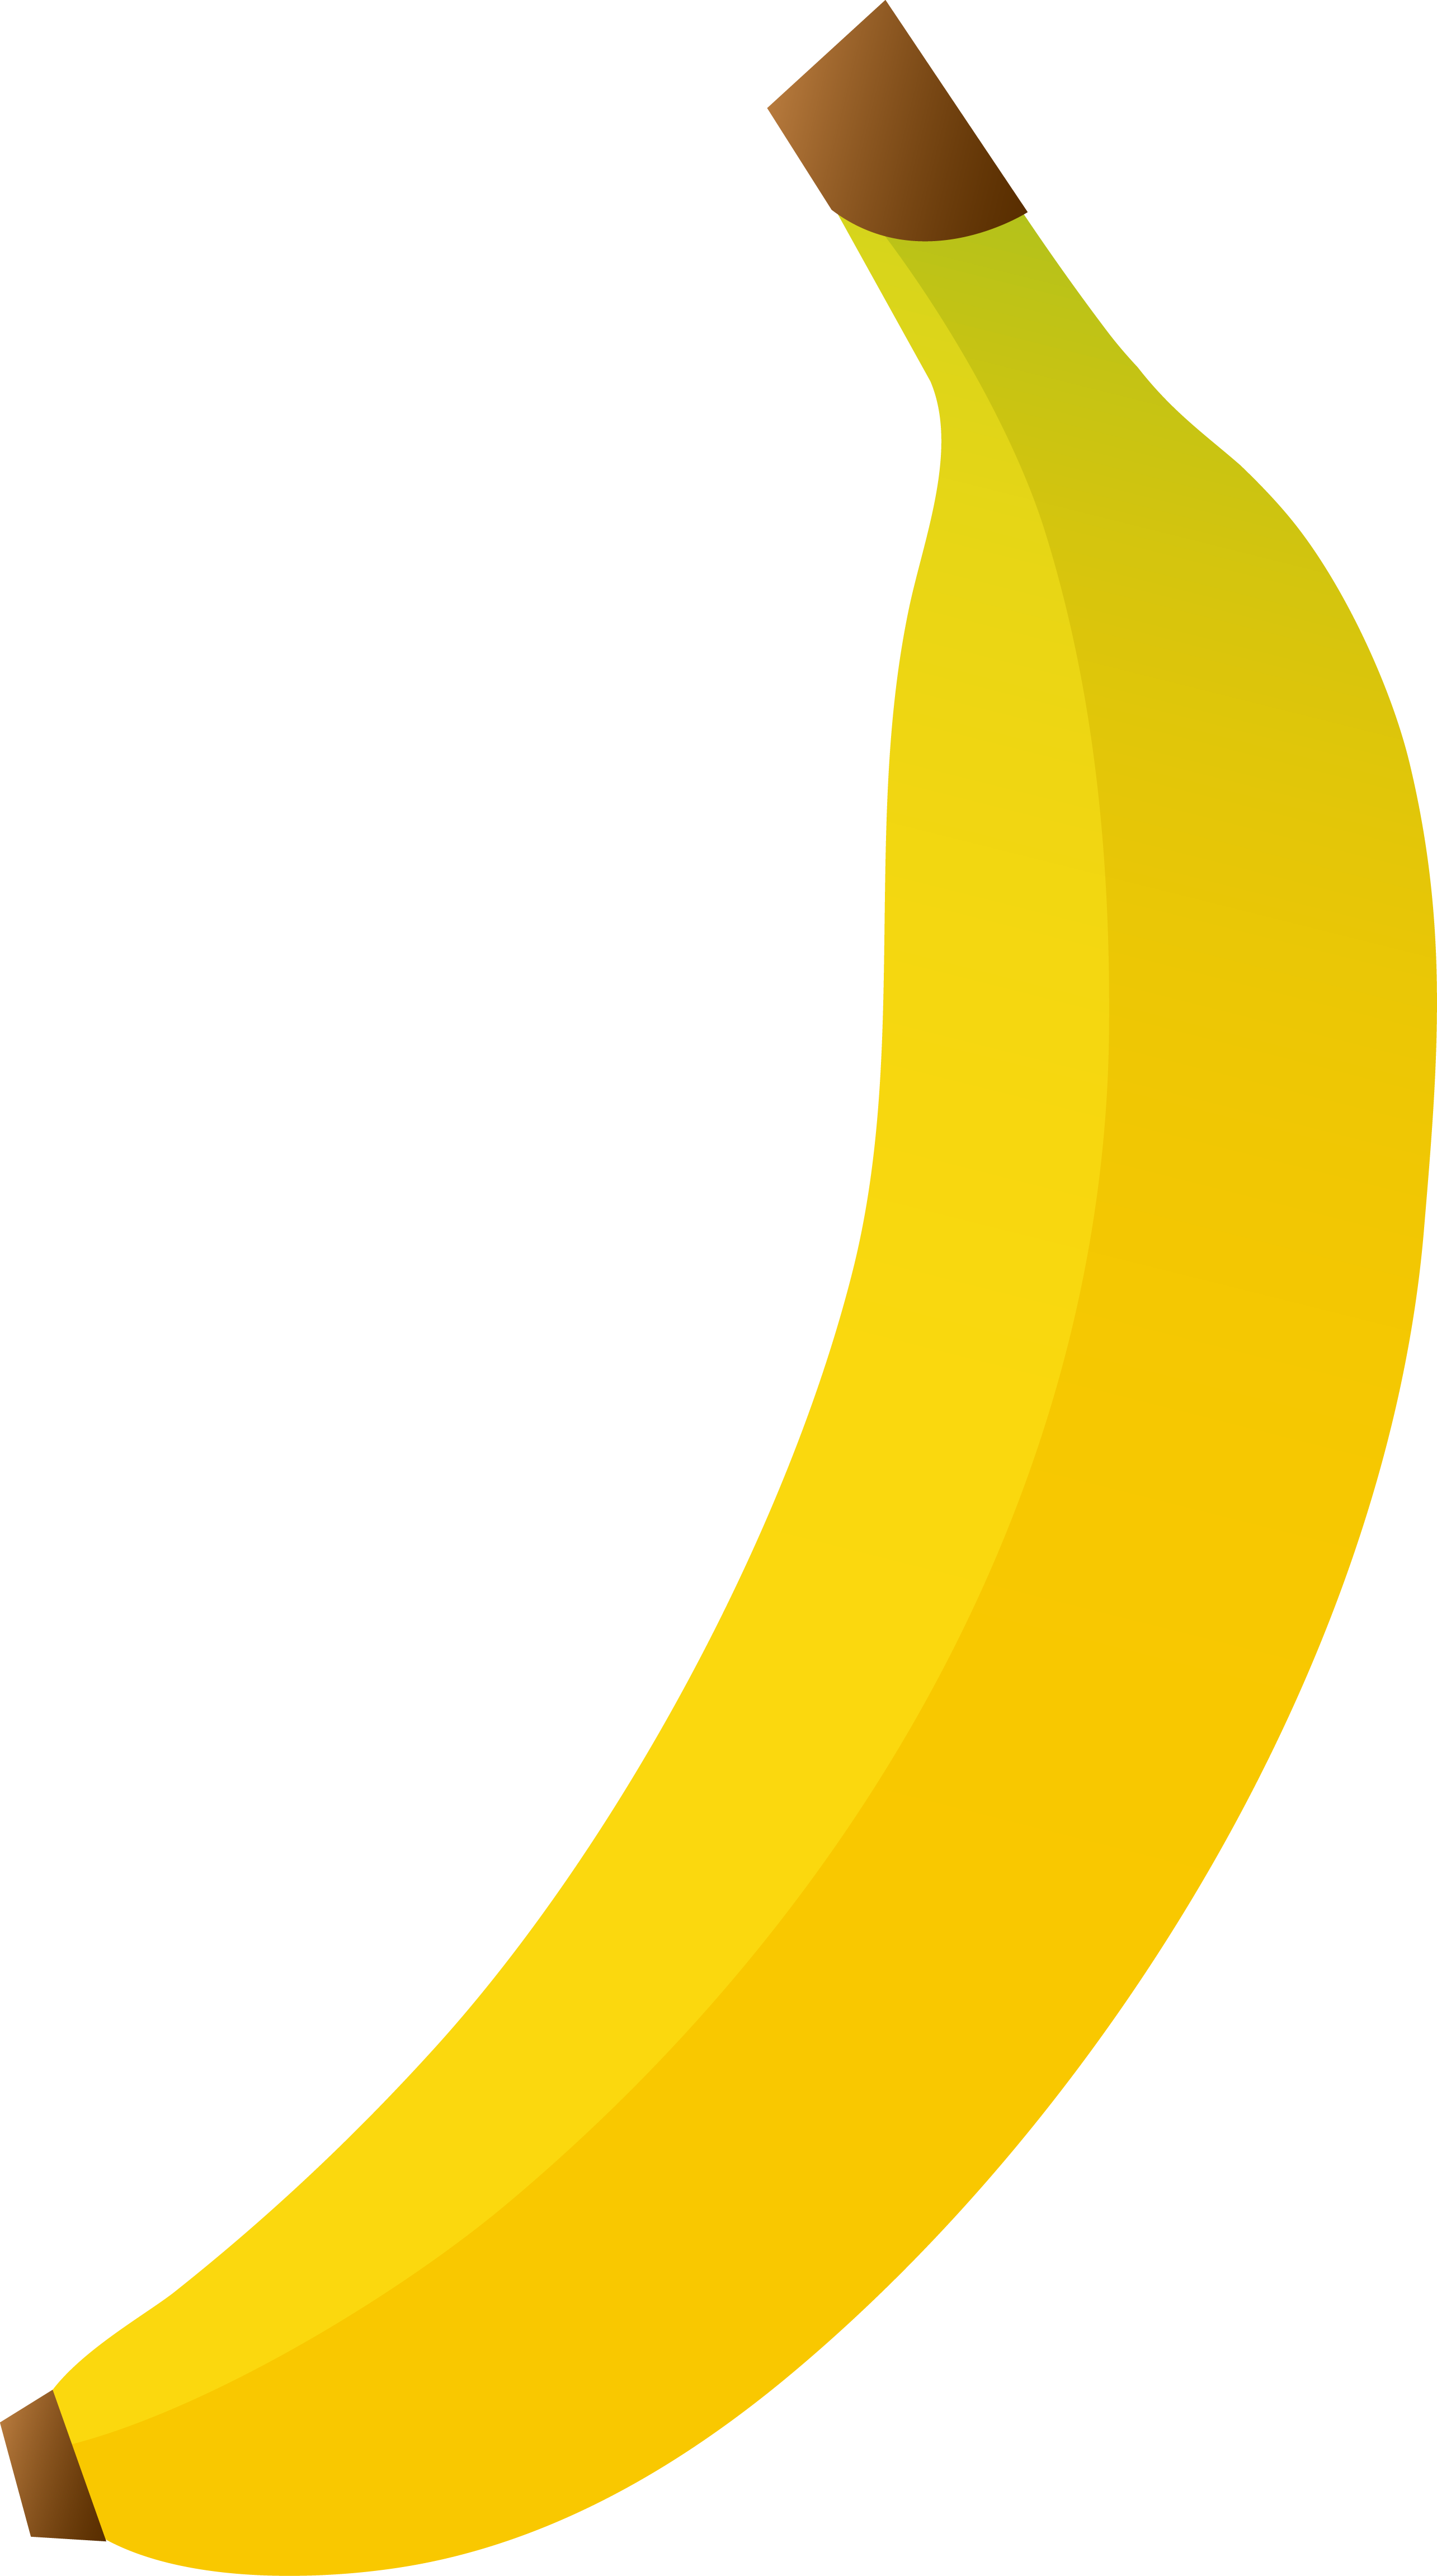 vector free Four clipart object. Single large yellow banana